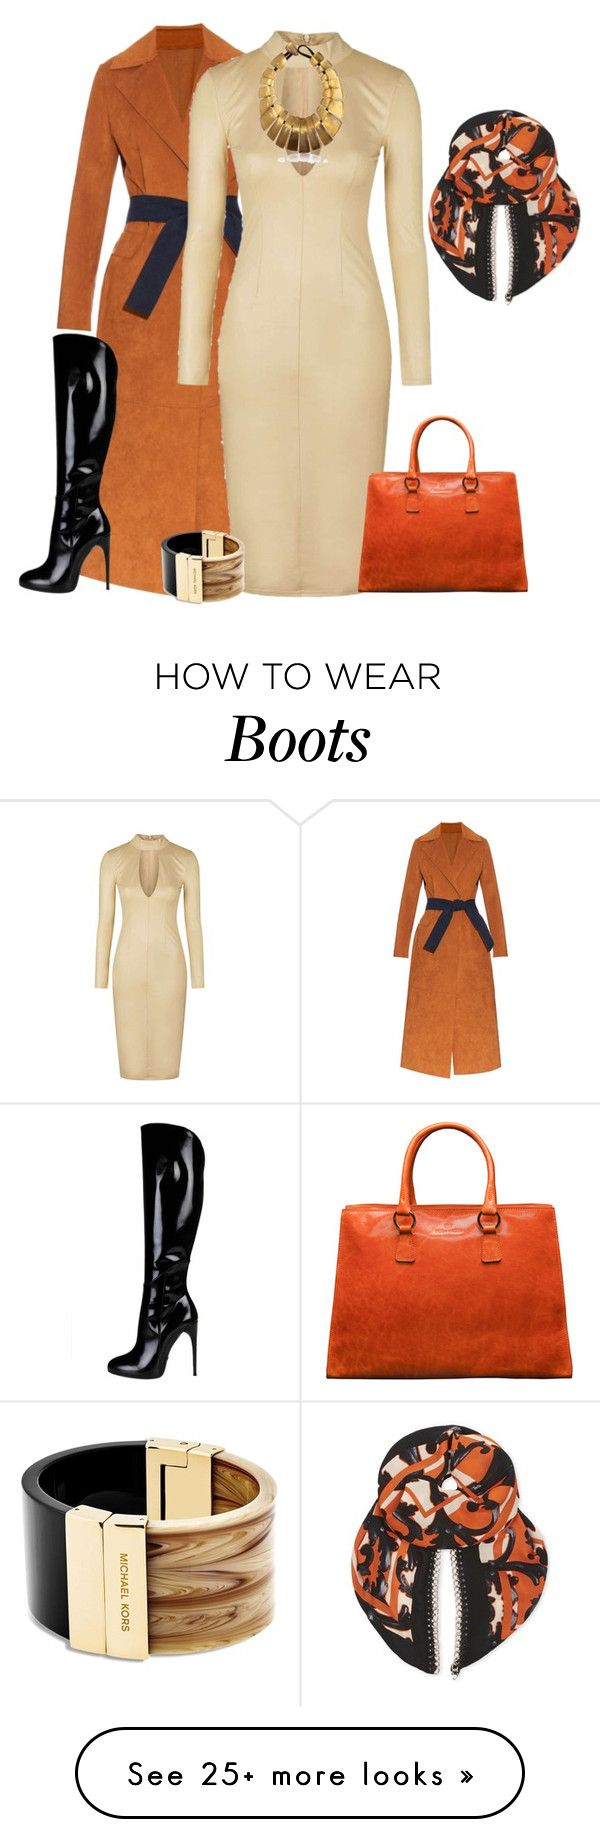 """outfit 3355"" by natalyag on Polyvore featuring MSGM, Topshop, Issa, Gucci, Michael Kors, women's clothing, women, female, woman and misses"